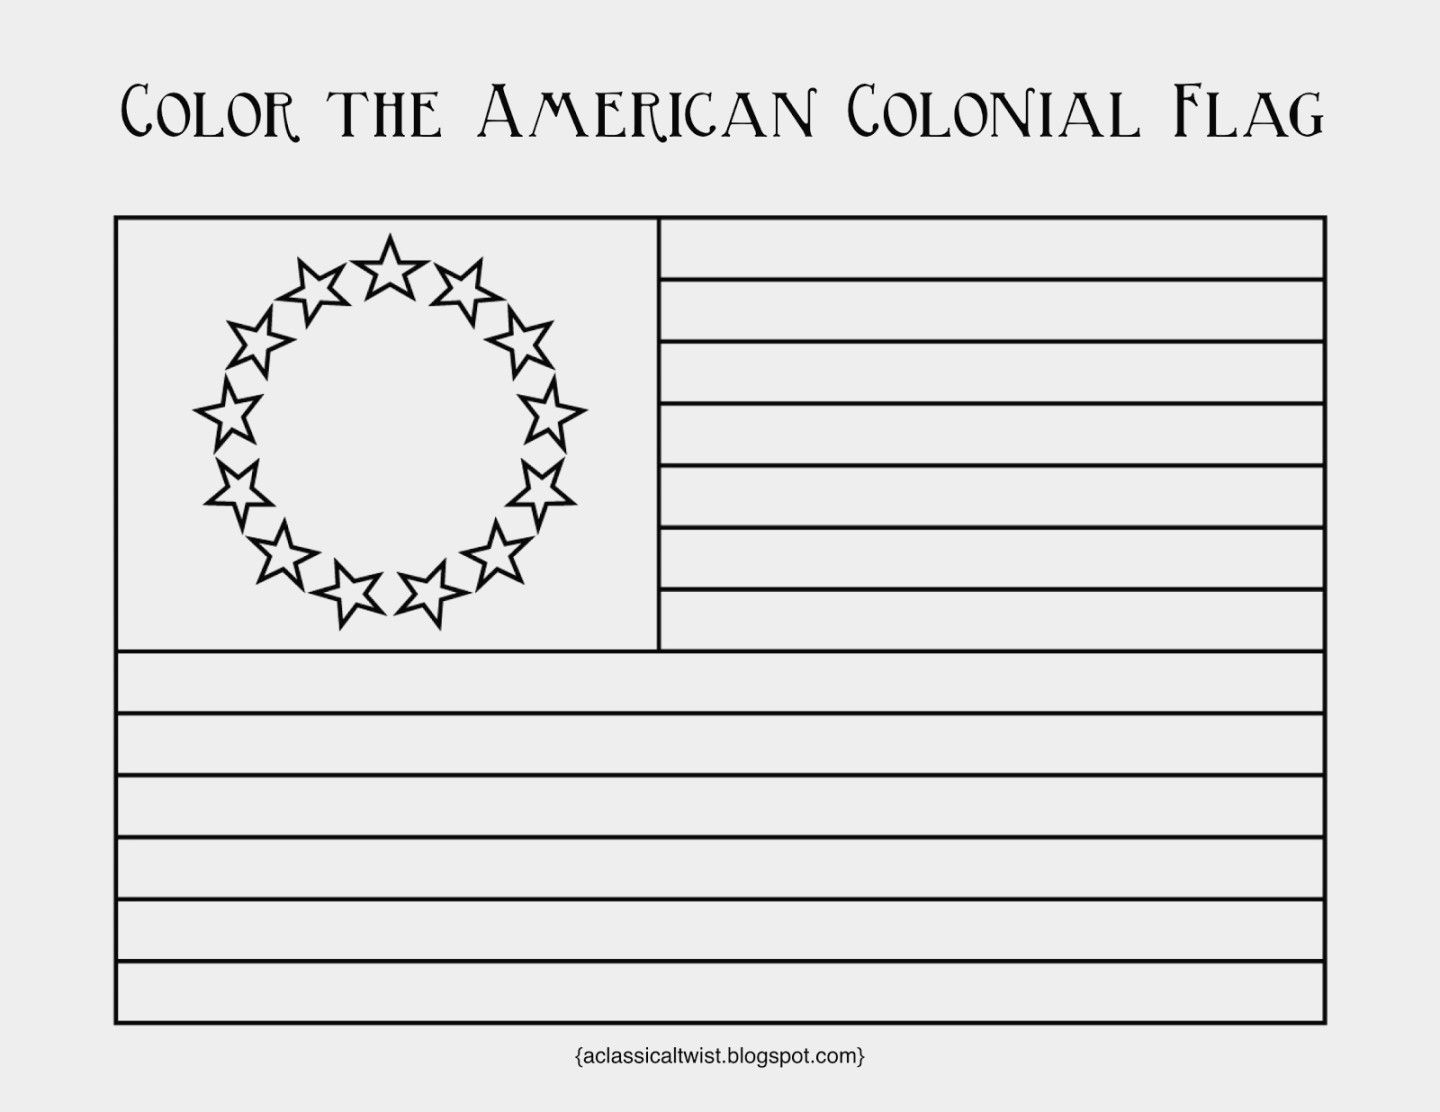 Unique 13 Colonies Flag Coloring Page Colonial Flag 13 Colonies